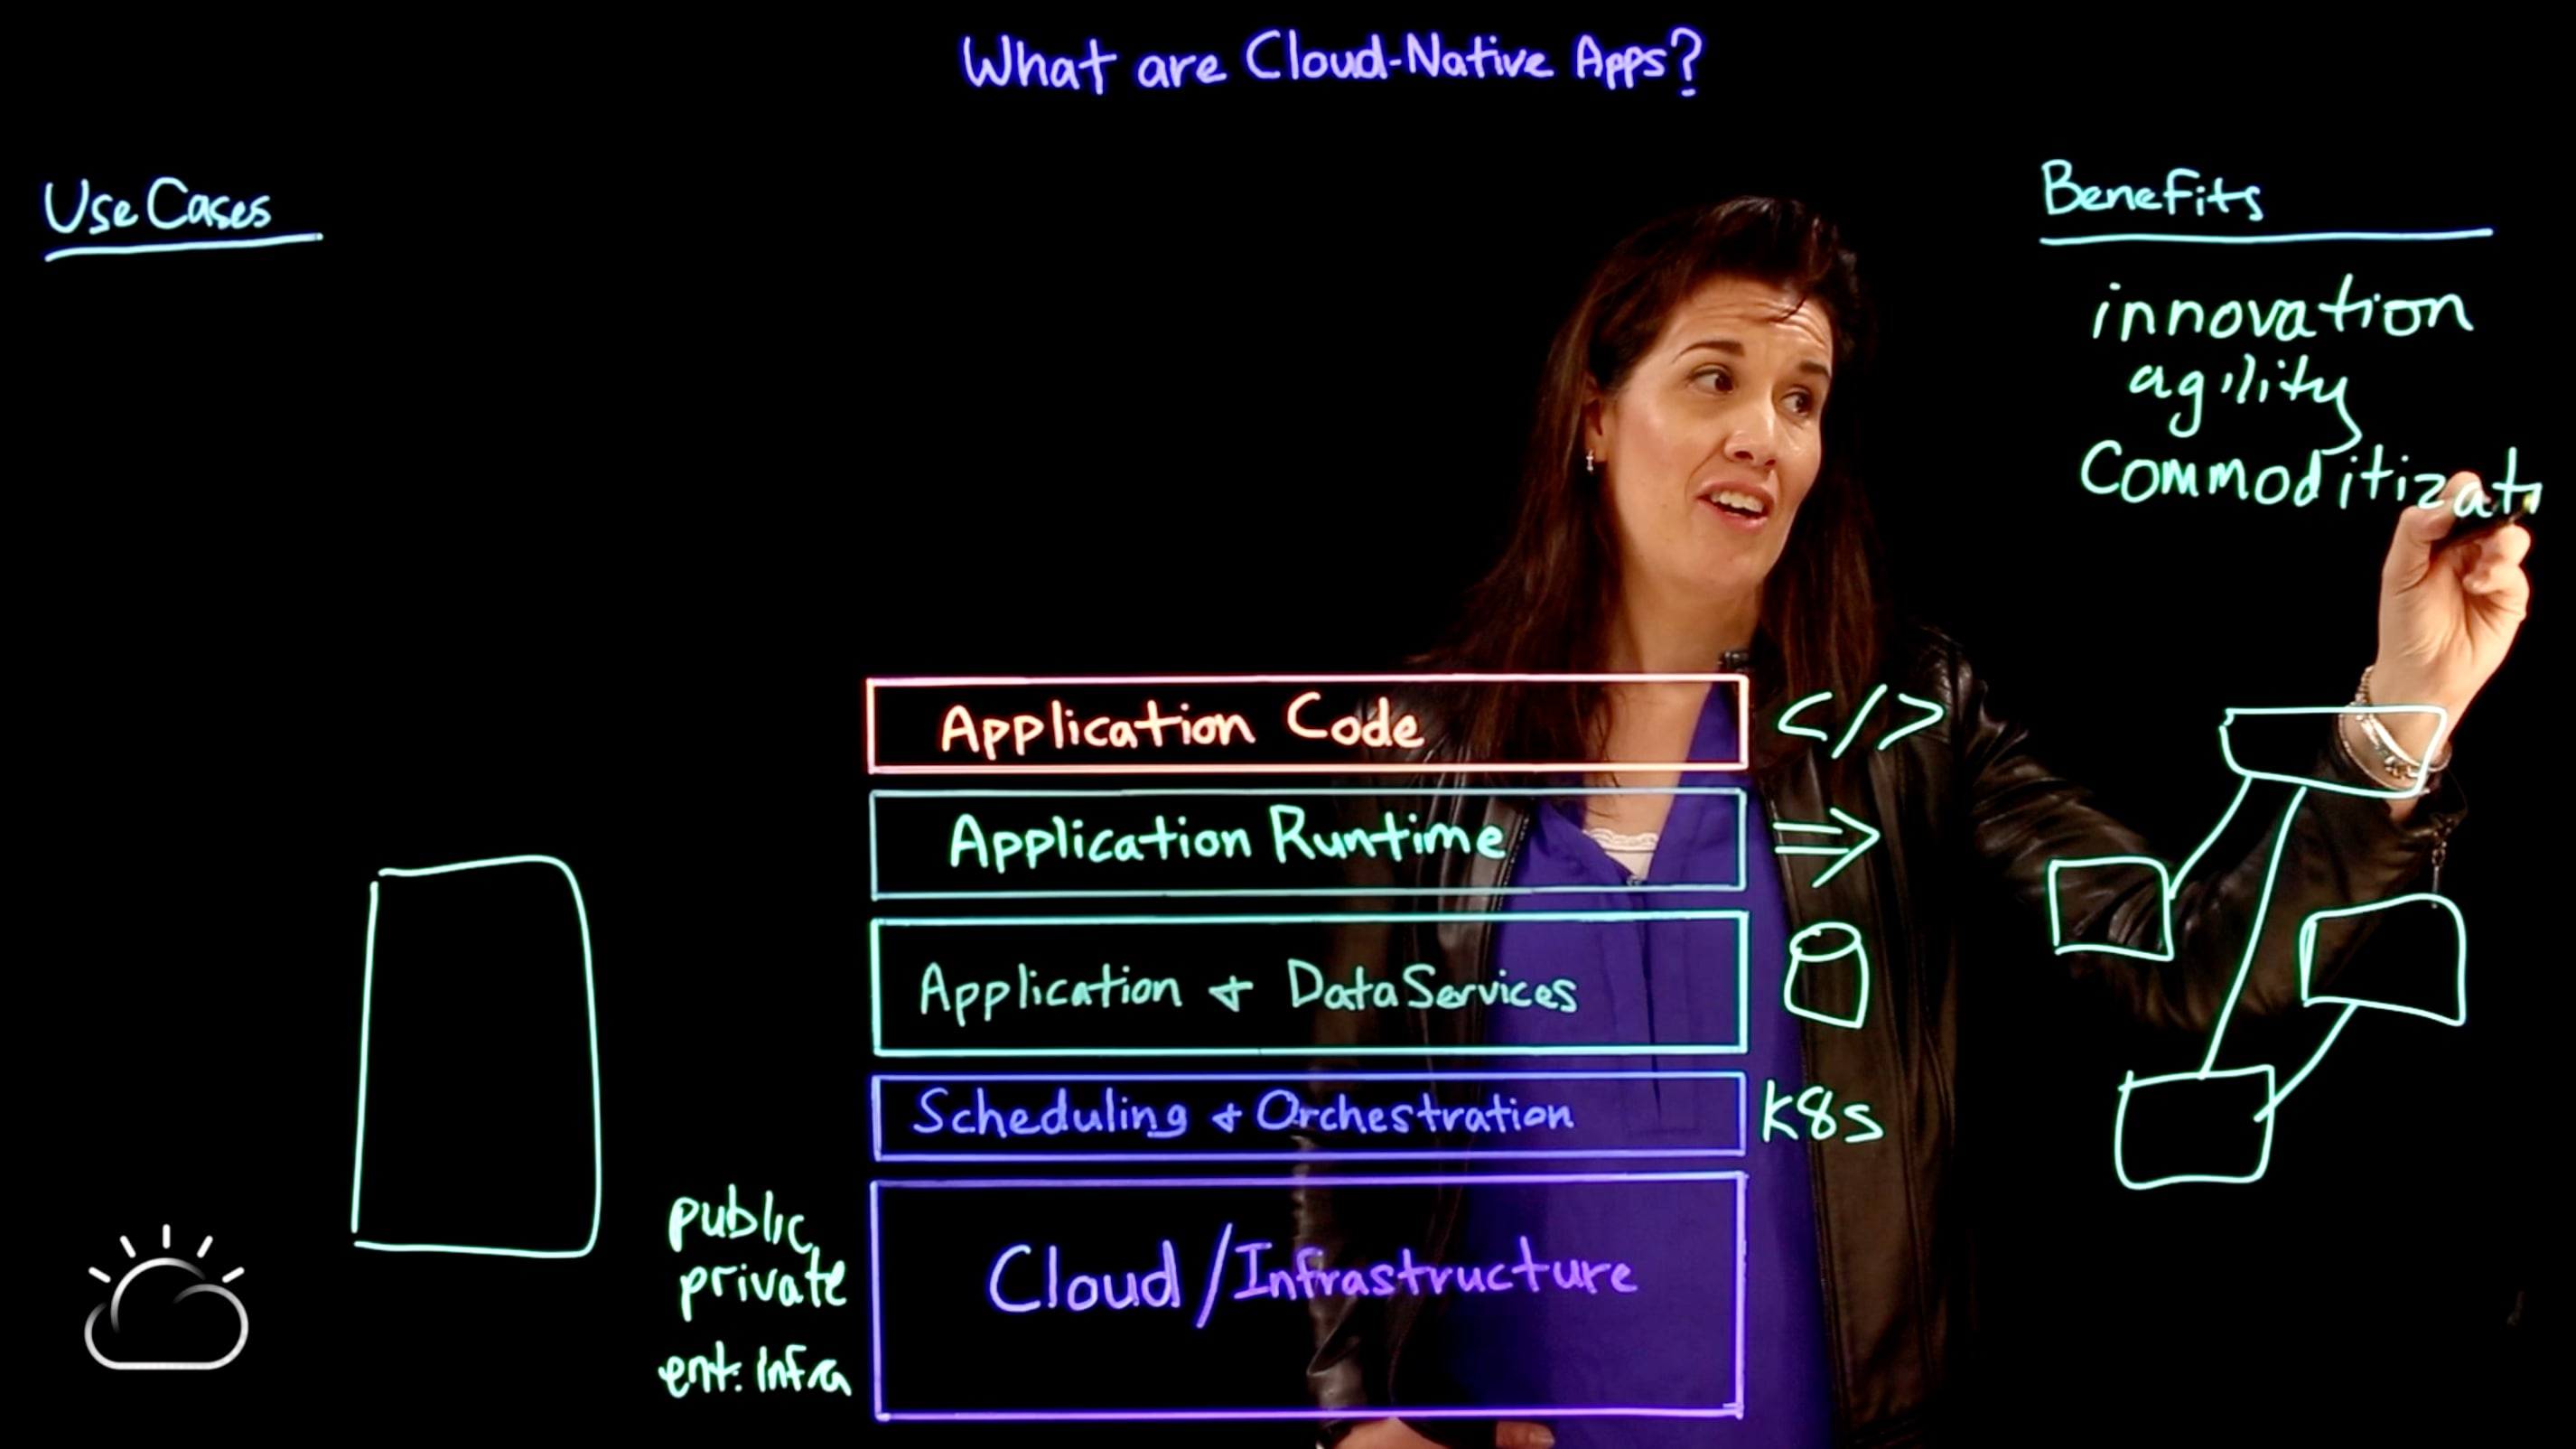 Benefits of cloud-native apps